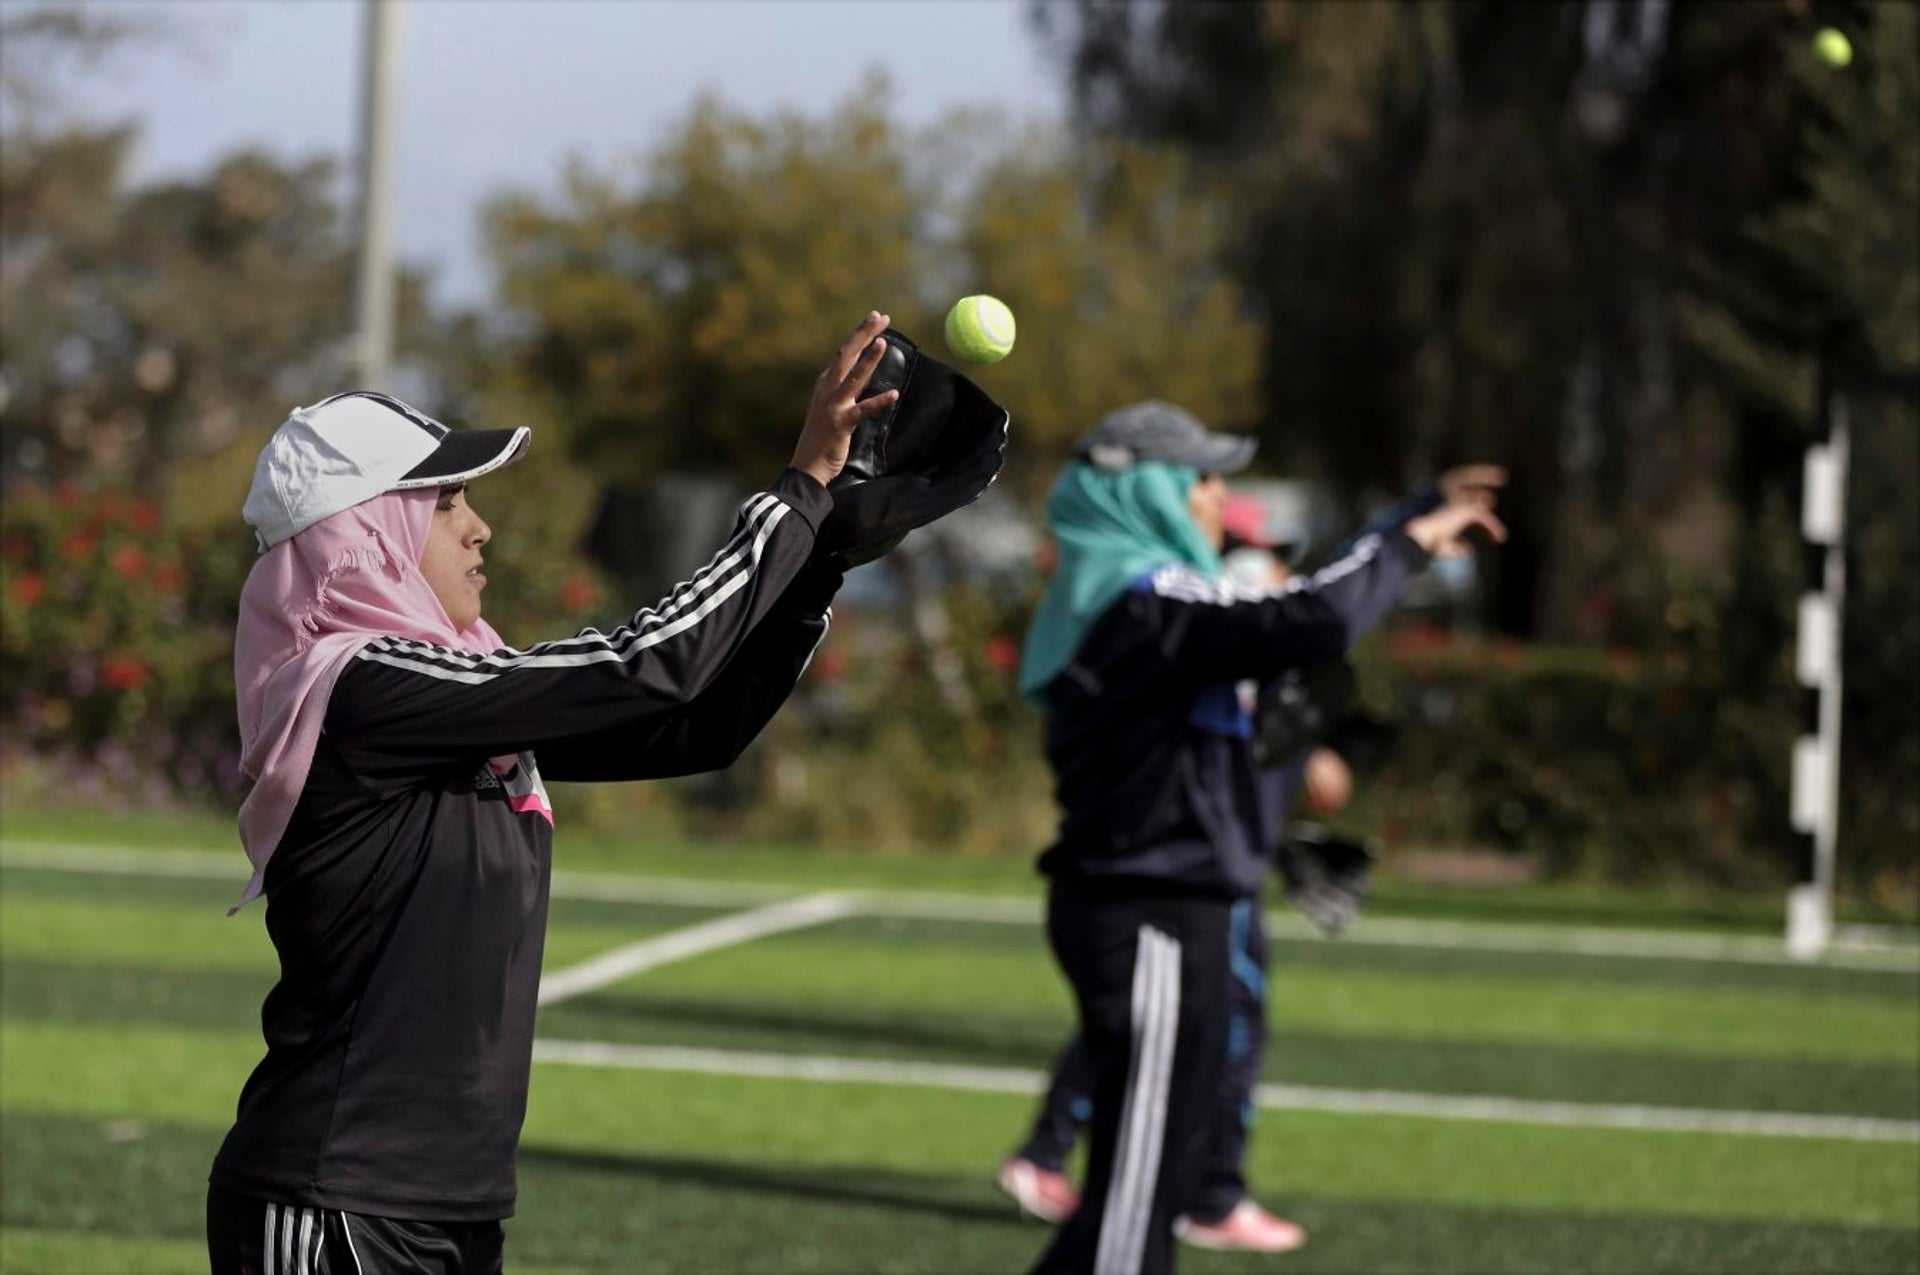 In this Sunday, March 19, 2017 photo, Palestinian women practice with tennis balls while training for an all women's baseball game, on a soccer field in Khan Younis, southern Gaza Strip. The female players wear hijabs, not helmets, toss around tennis balls, not baseballs and their leather gloves have been replaced by black imitations knitted from fabric. The group of young women are trying to bring baseball to Gaza -- giving the traditional American pastime a distinctly local feel.